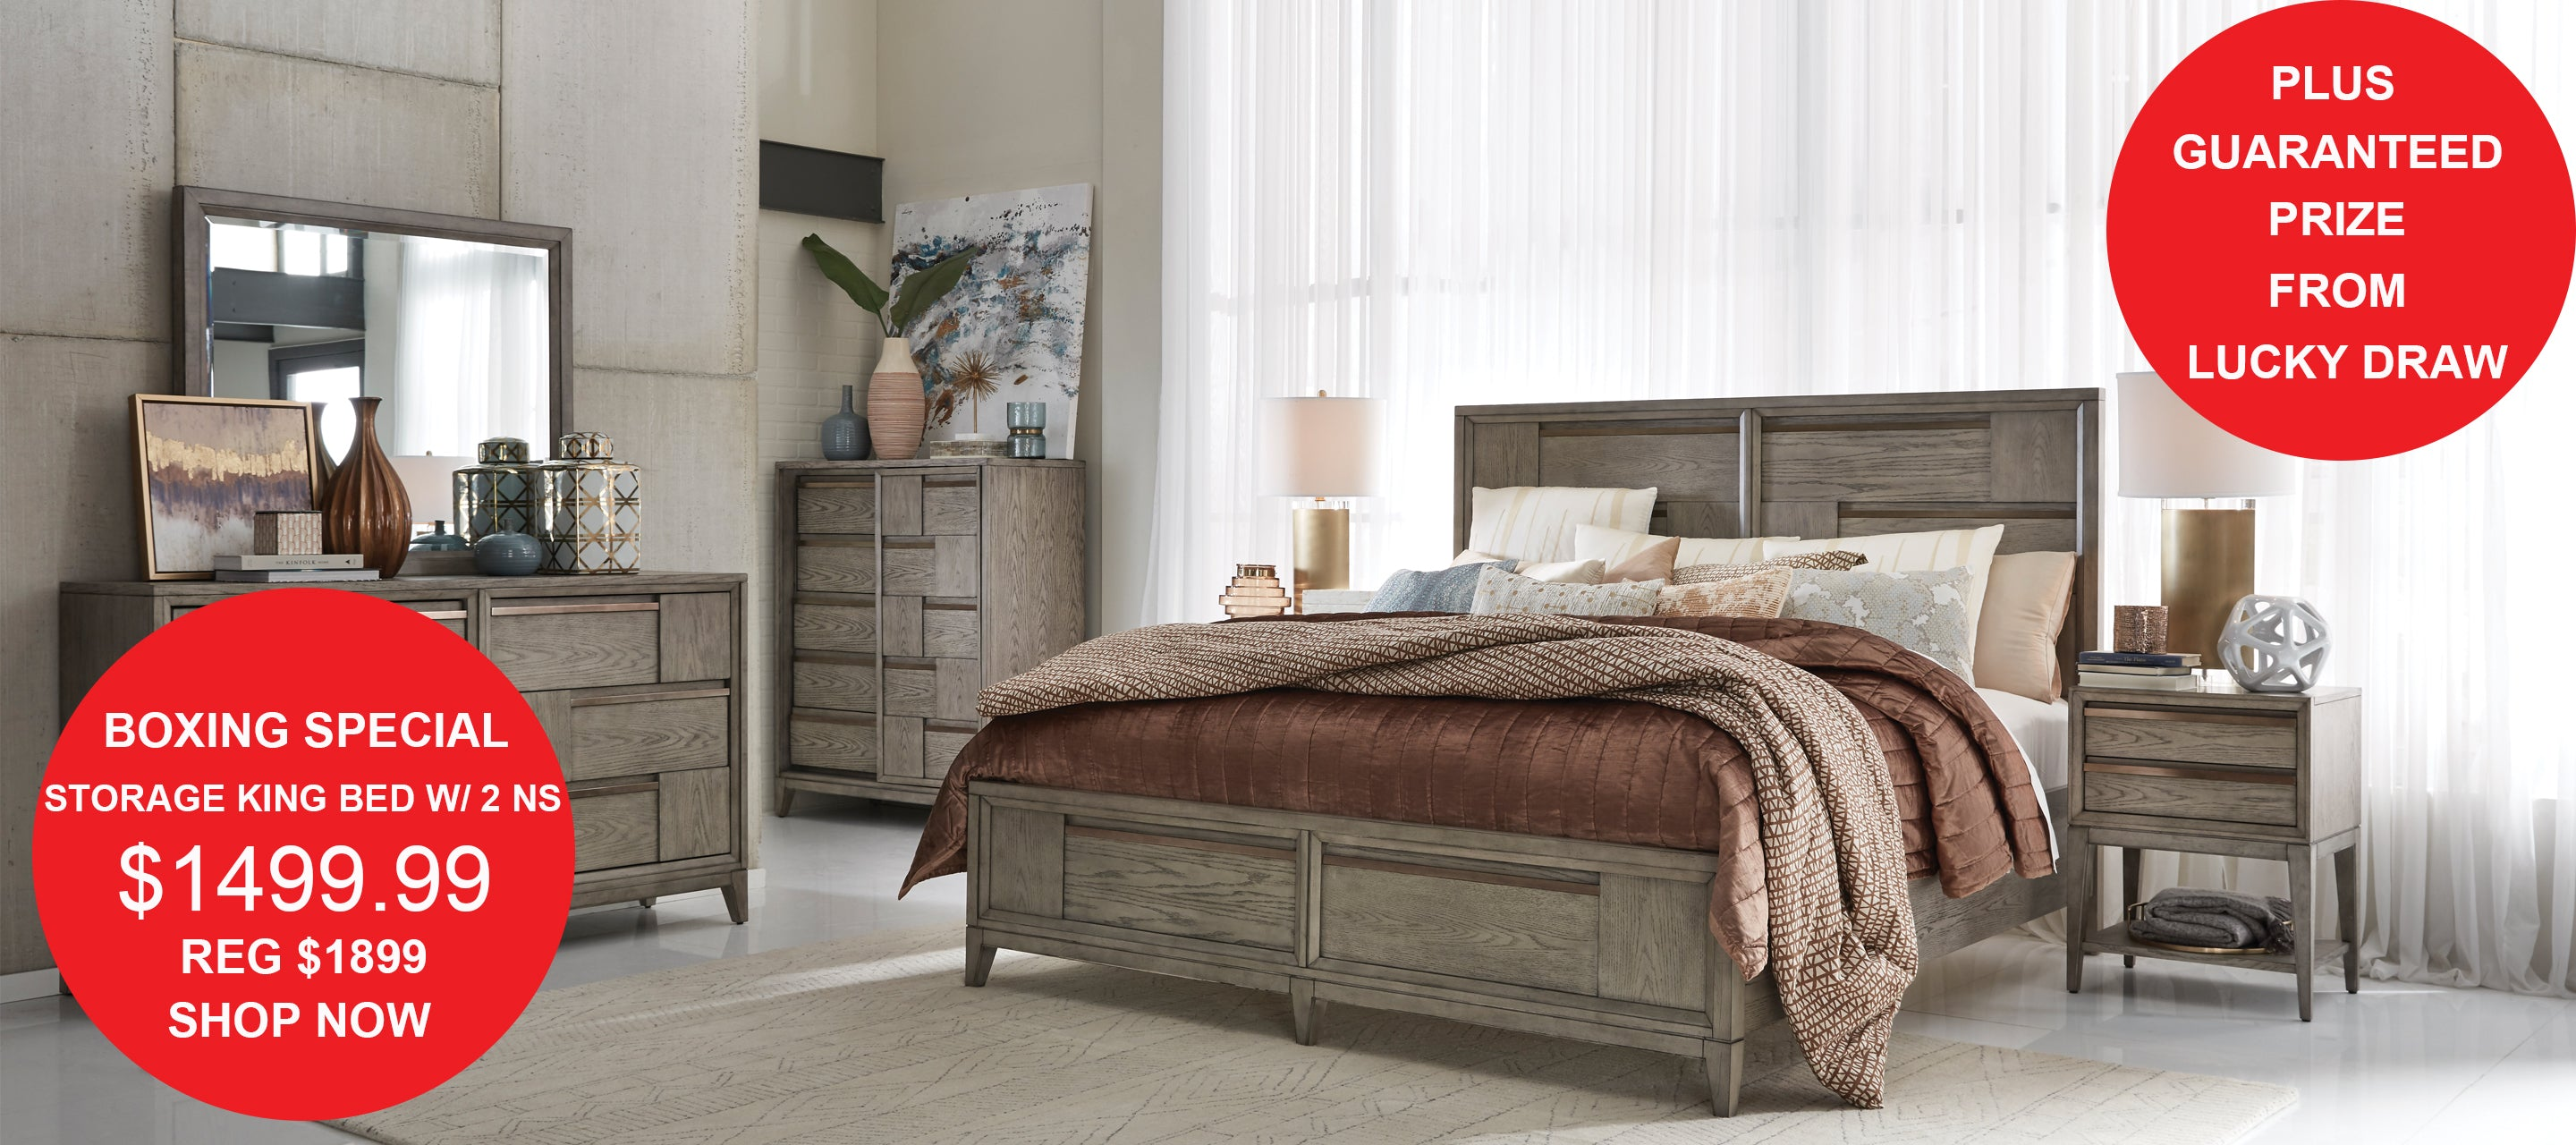 Ideal home furnishings furniture store in edmonton, ab